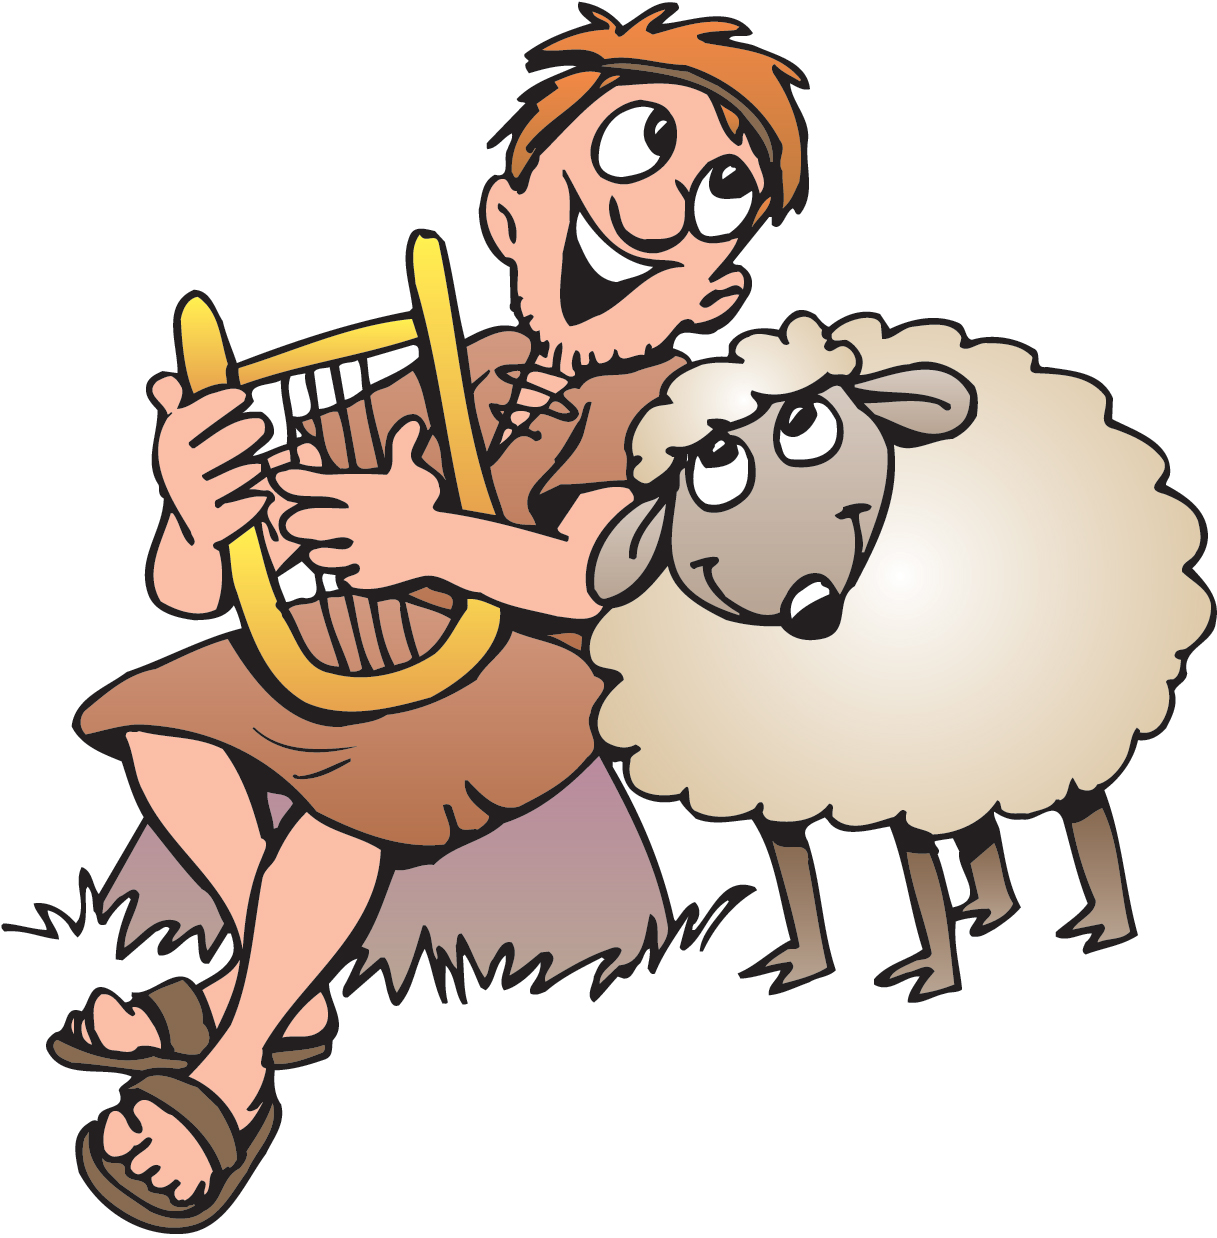 Shepherd Boy clipart #8